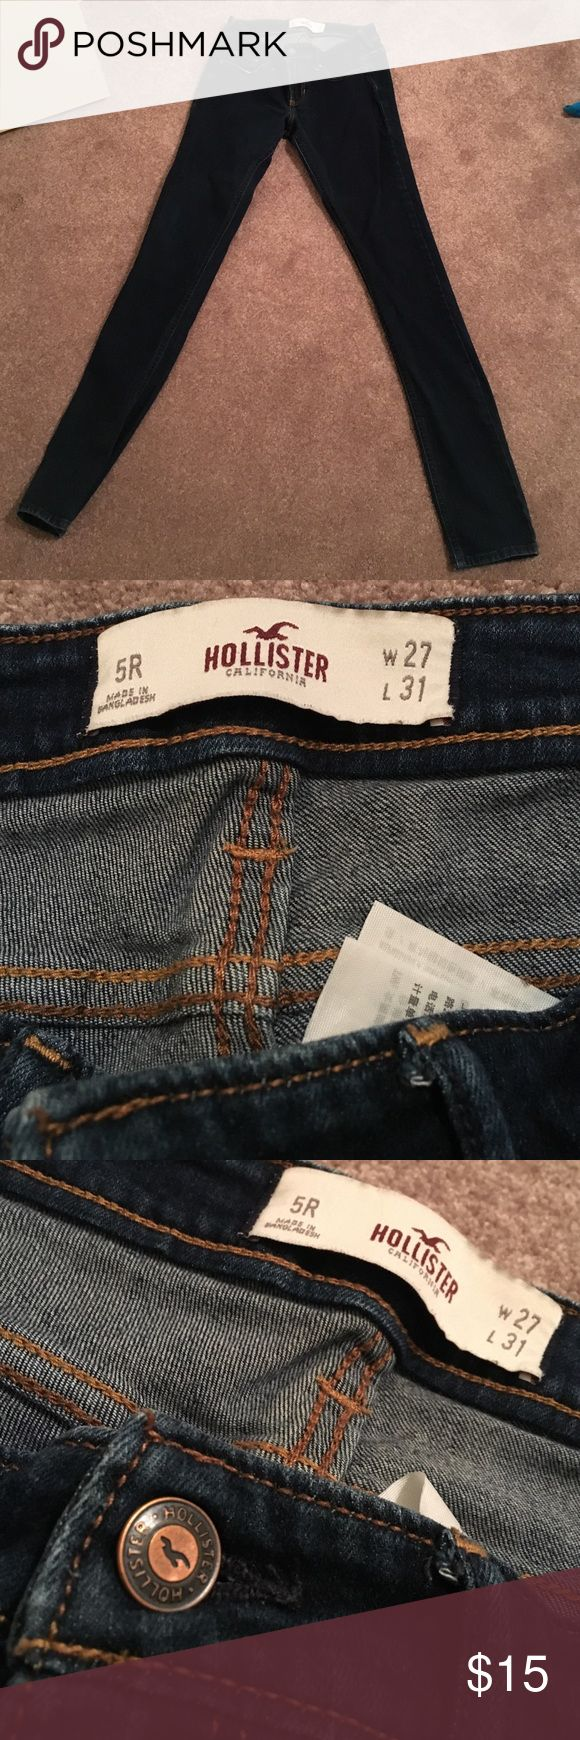 Hollister Jeans! Regular fitting Hollister Jean Pants! 5R, W 27, L 31 Hollister Jeans Straight Leg